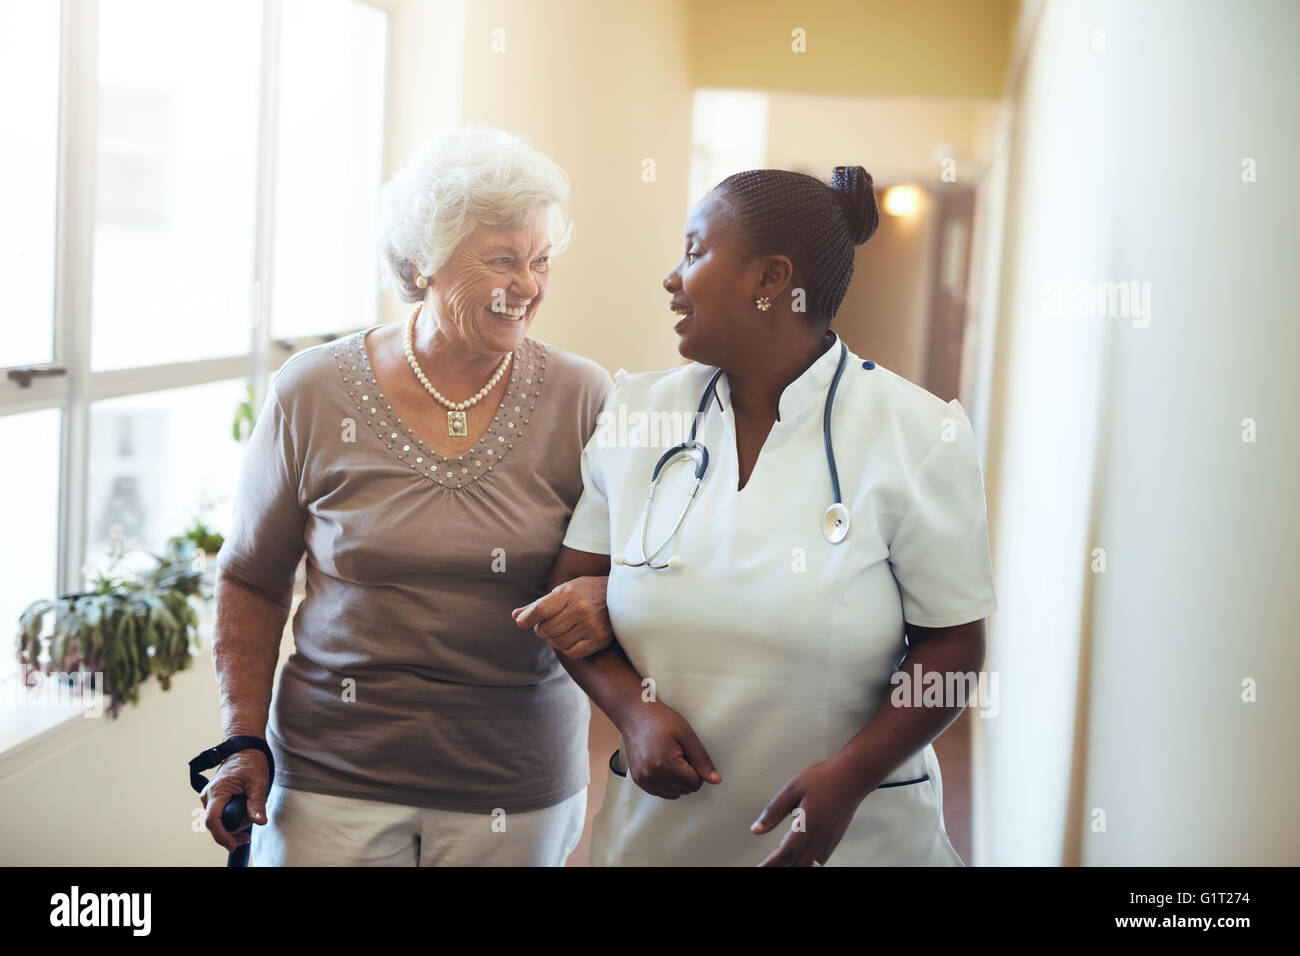 Senior woman walking in the nursing home supported by a caregiver. Nurse assisting senior woman. - Stock Image